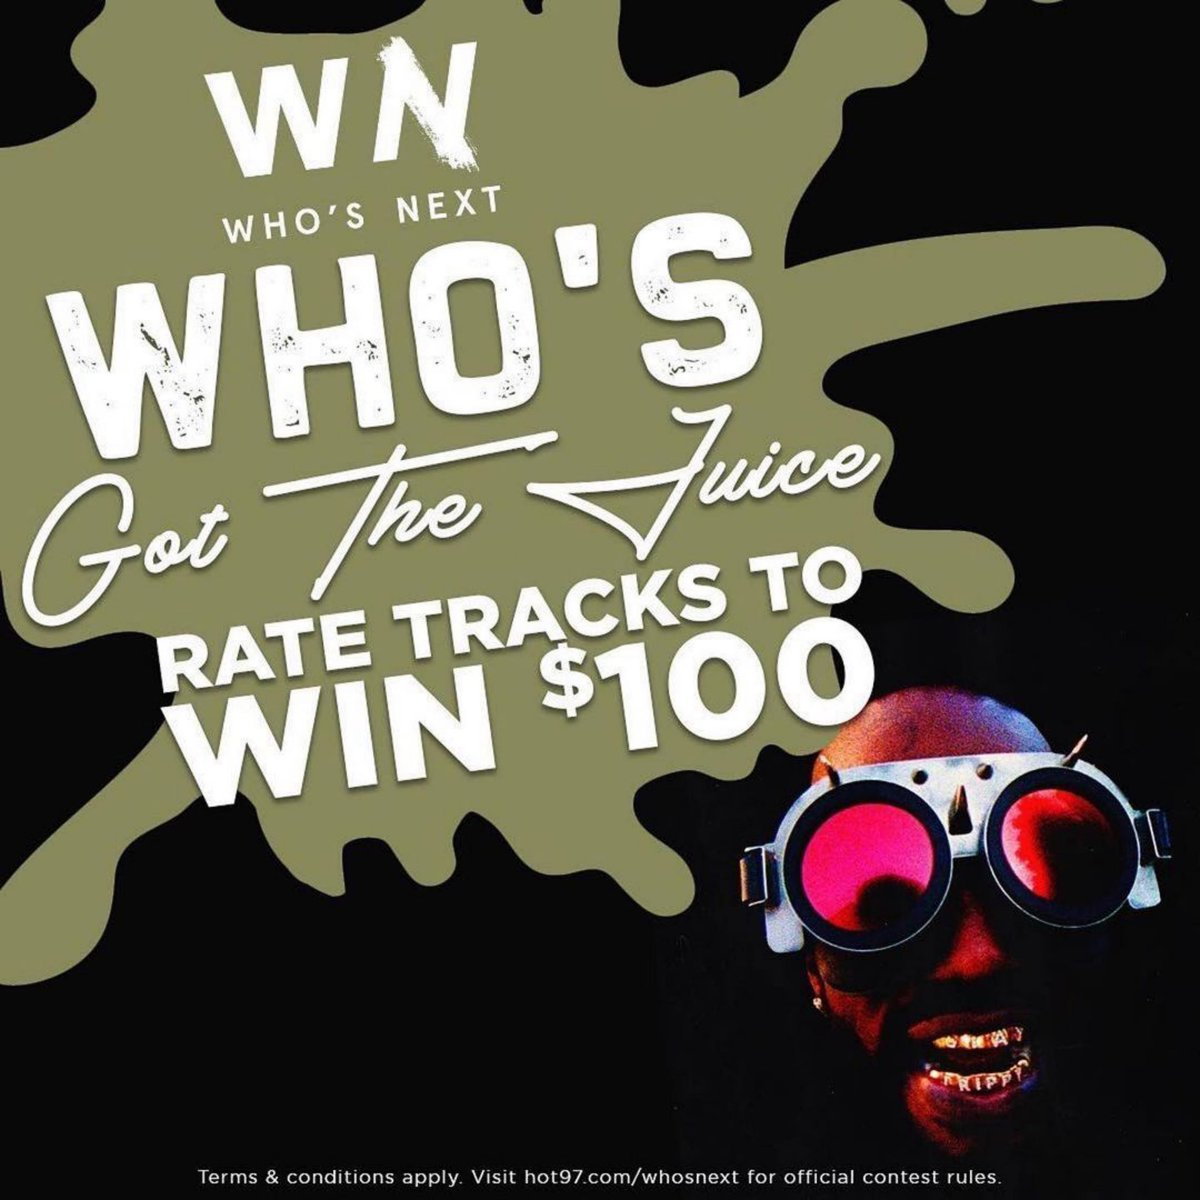 """Do YOU love listening to new music? 🎶   Then help us rate tracks & qualify to be 1 of 3 winners to receive $100 cash just for being a """"music expert"""". 💸   Sign up now and rate music! -"""